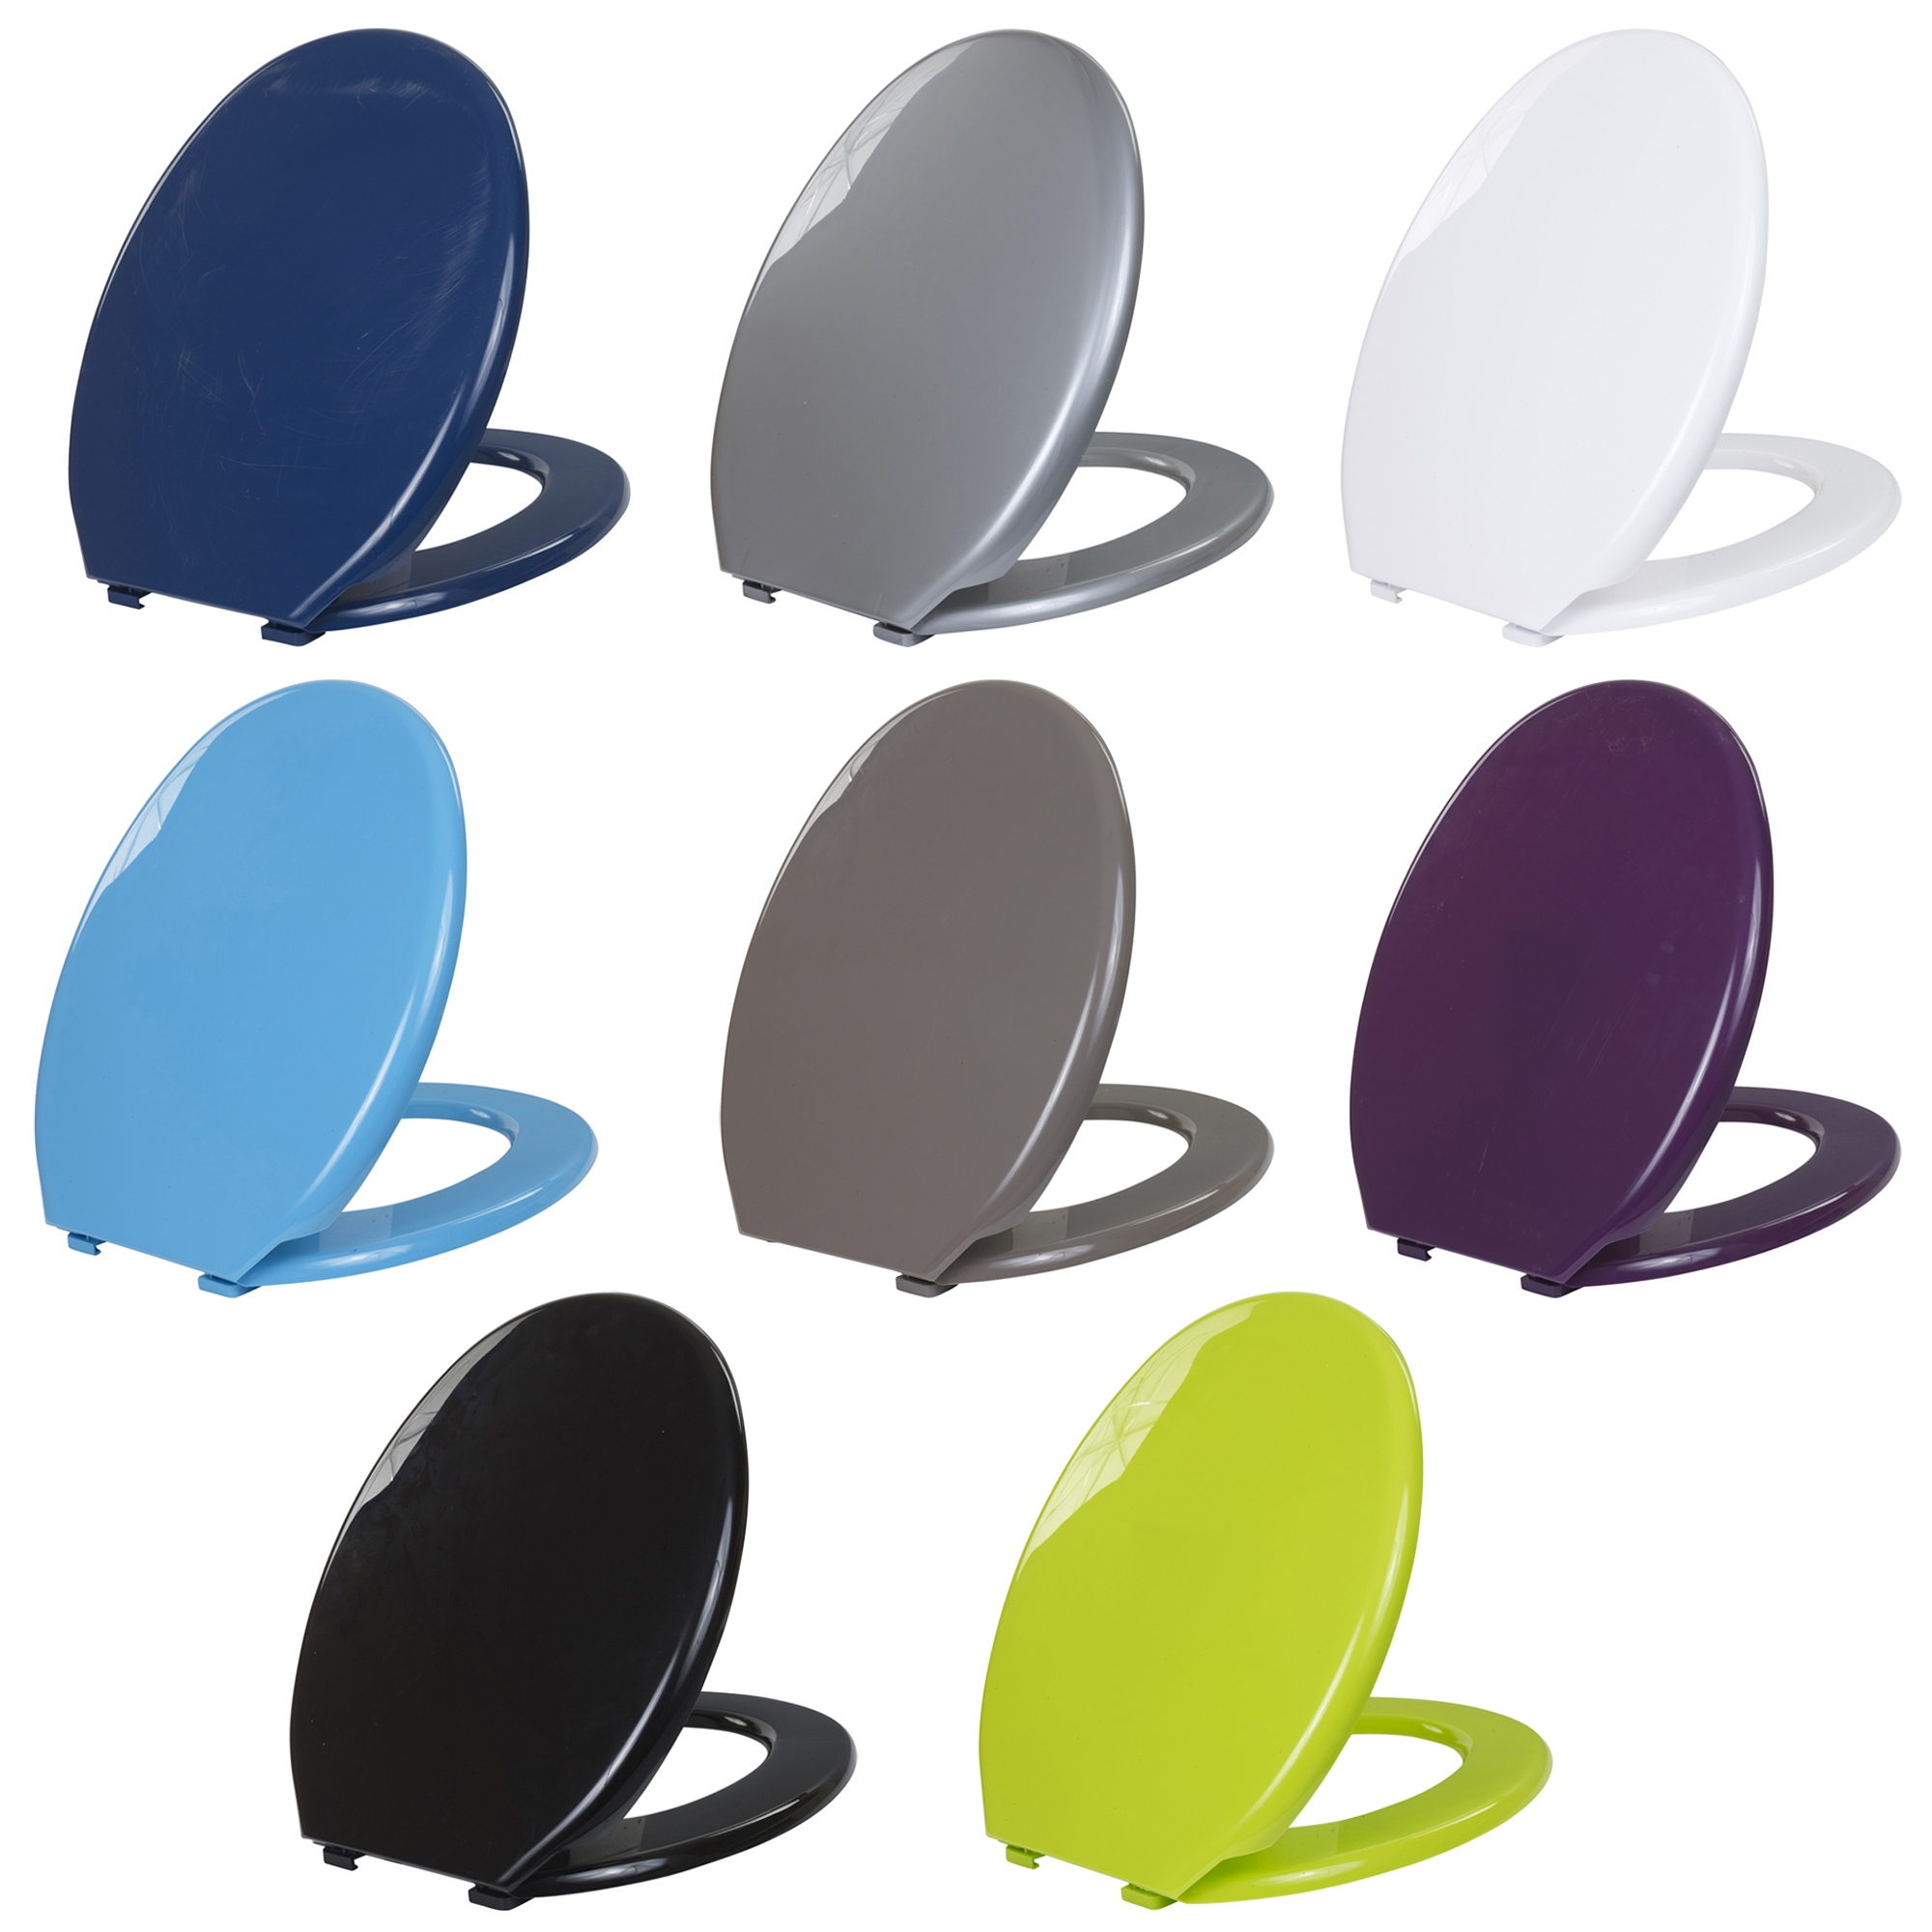 Admirable Details About Coloured Universal Toilet Seat Easy Clean Oval Shape Durable Plastic Bathroom Wc Pdpeps Interior Chair Design Pdpepsorg